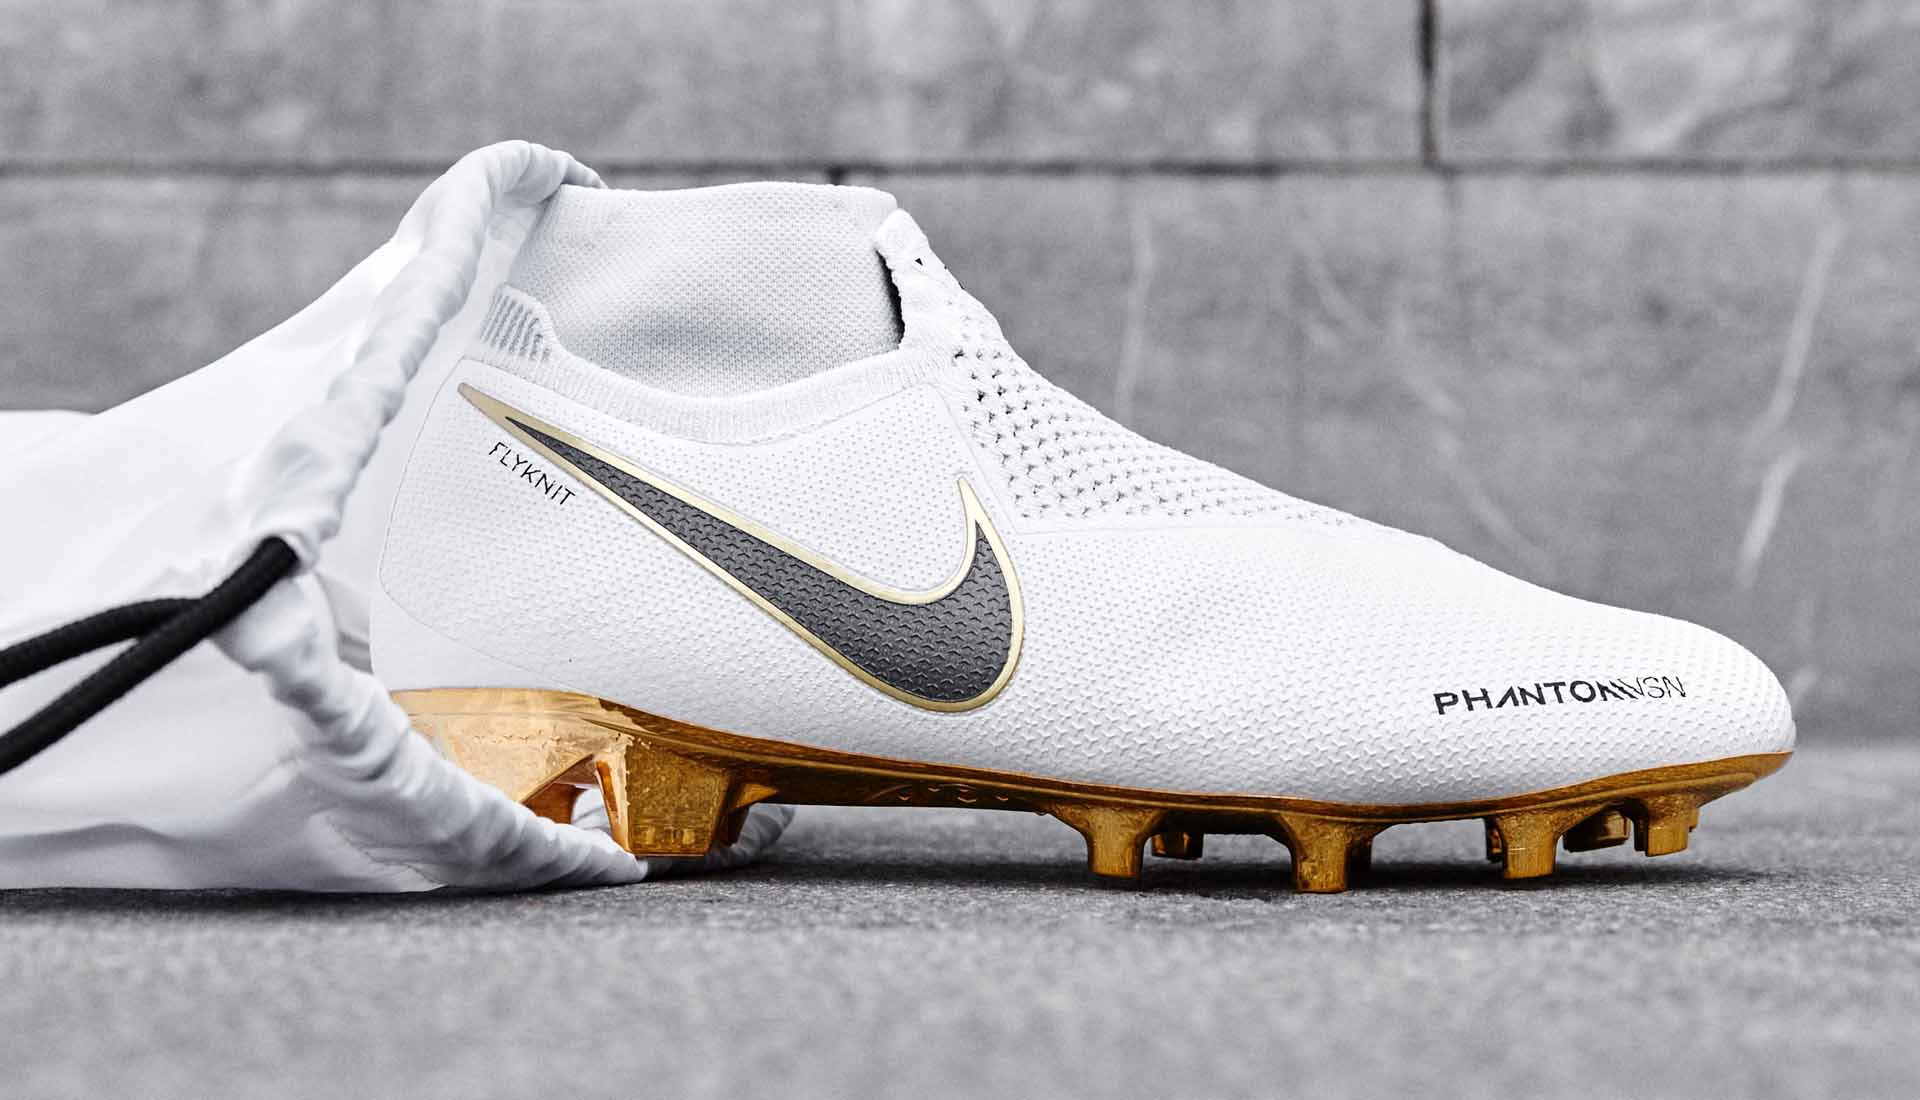 Nike Launch The Limited Edition PhantomVSN